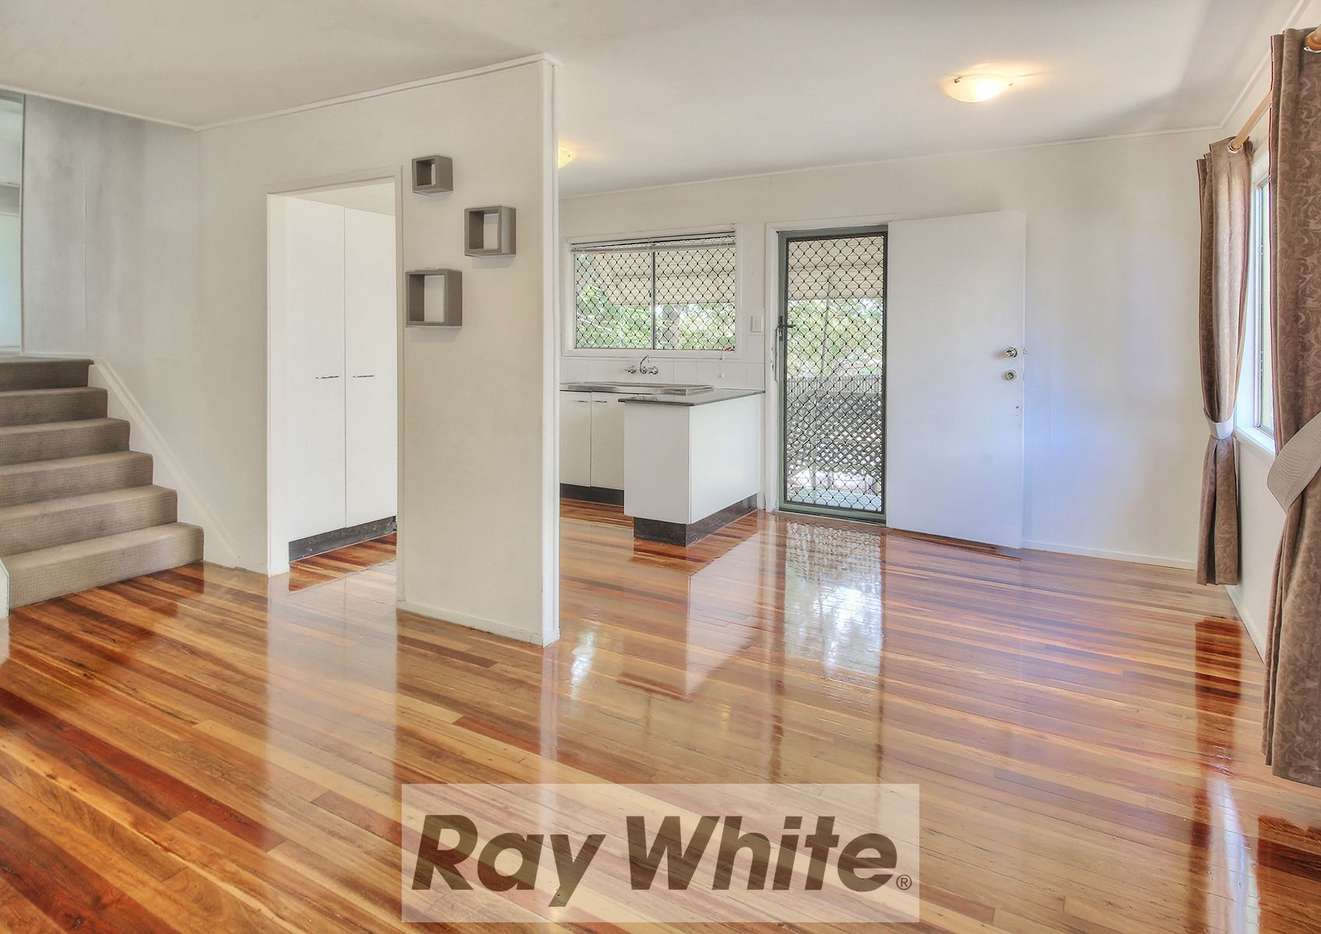 Main view of Homely house listing, 96 Jean Street, Woodridge, QLD 4114